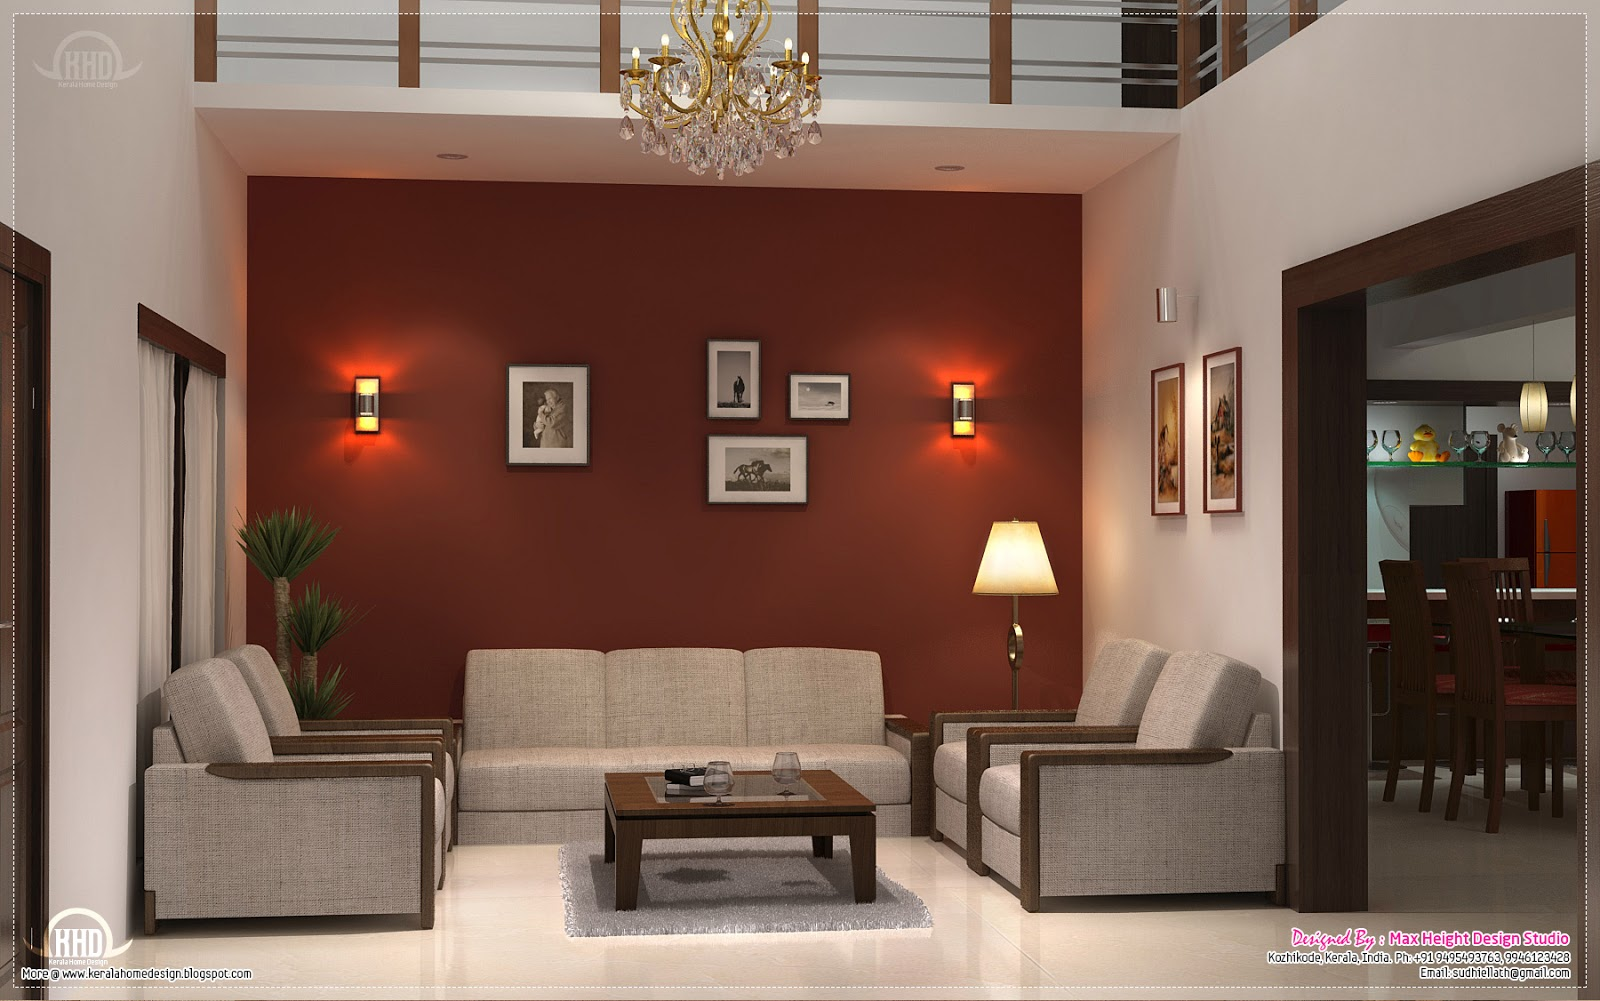 Home interior design ideas home kerala plans for House simple interior design